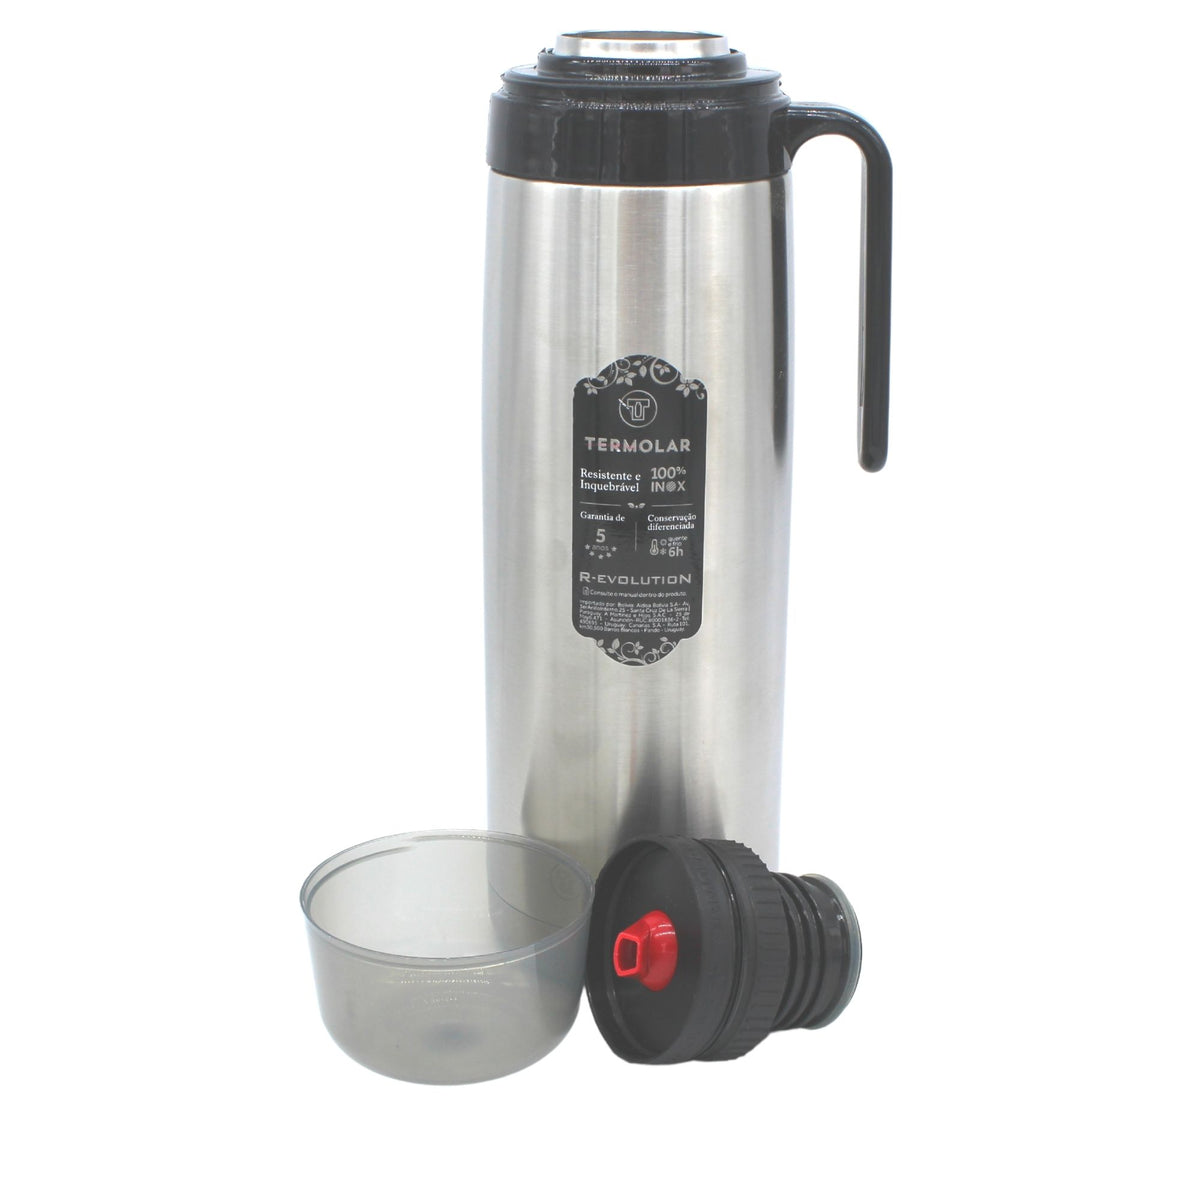 Unbreakable Termolar R-Evolution Stainless Steel Thermos, 1 Liter